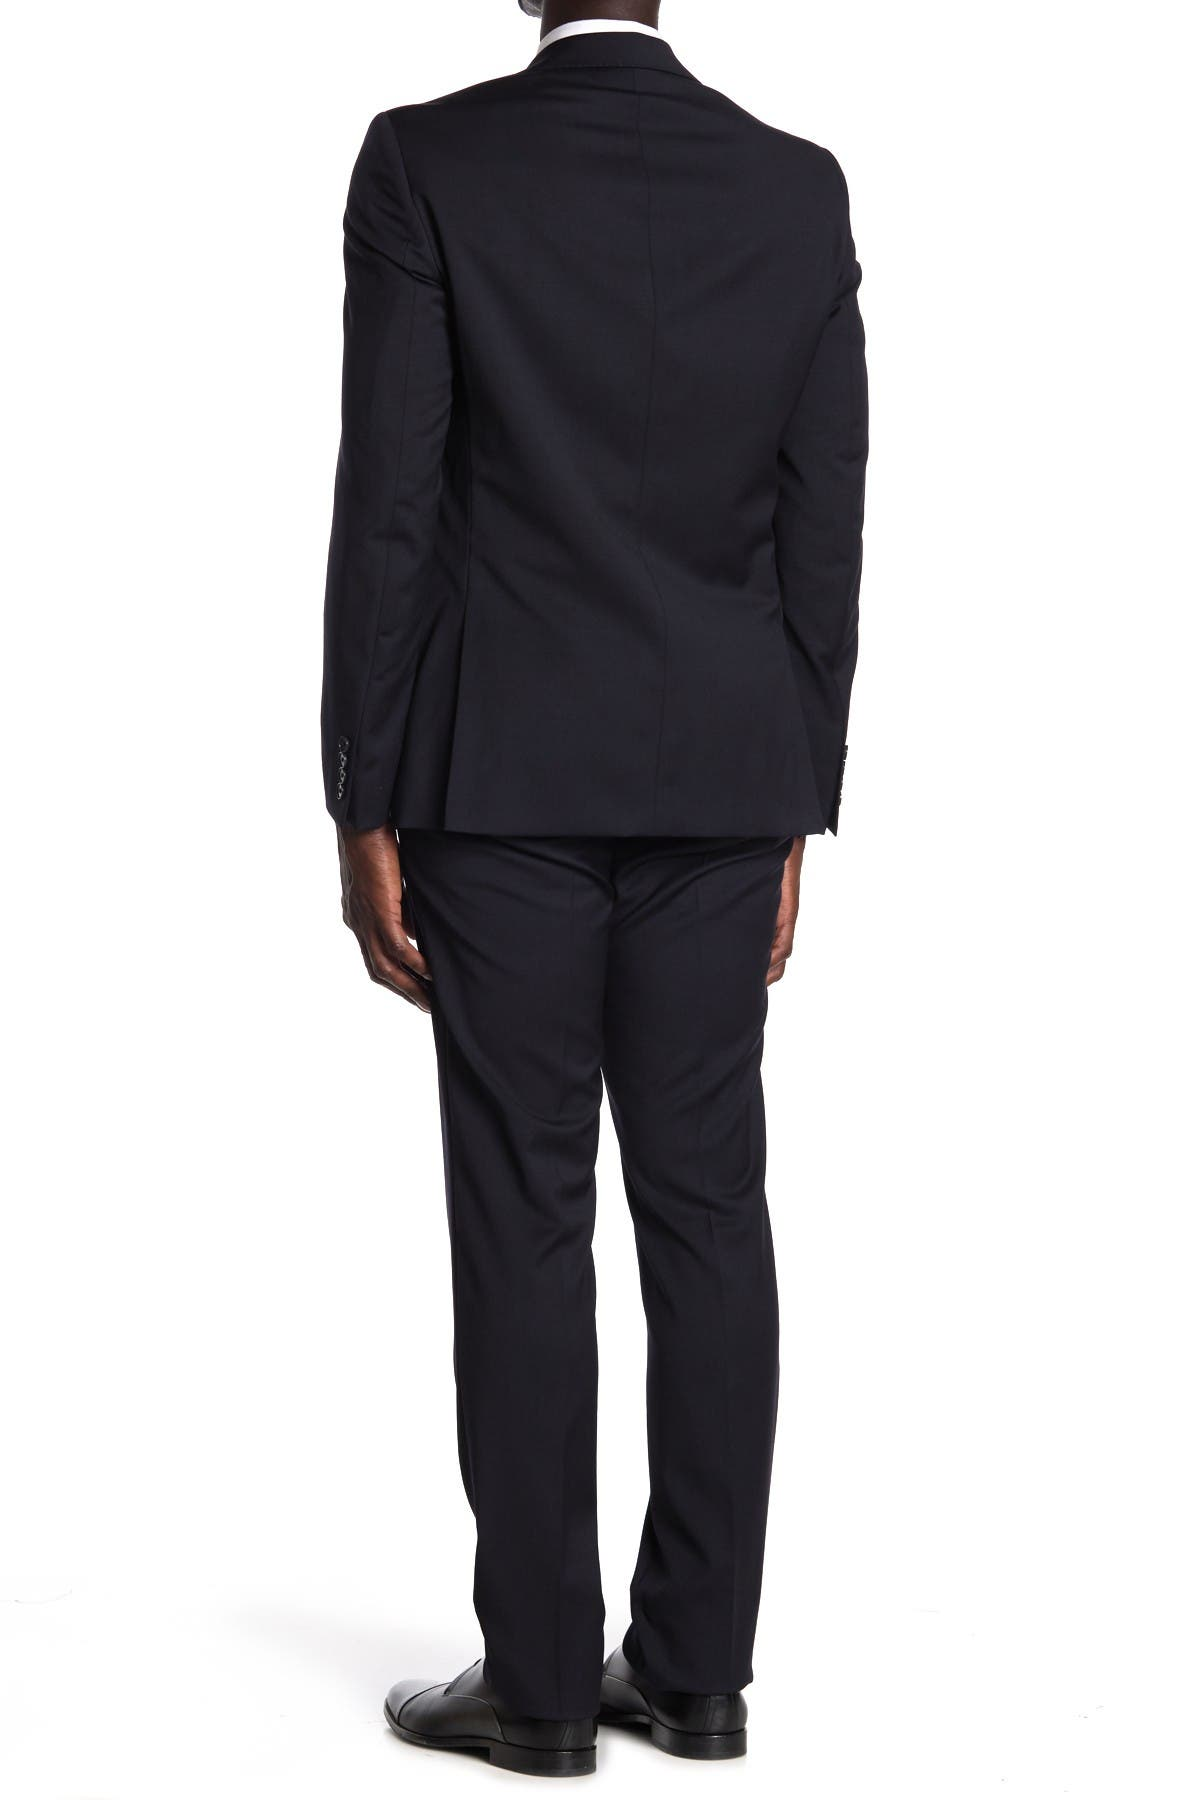 Image of Calvin Klein Navy Wool Two Button Notch Lapel Suit